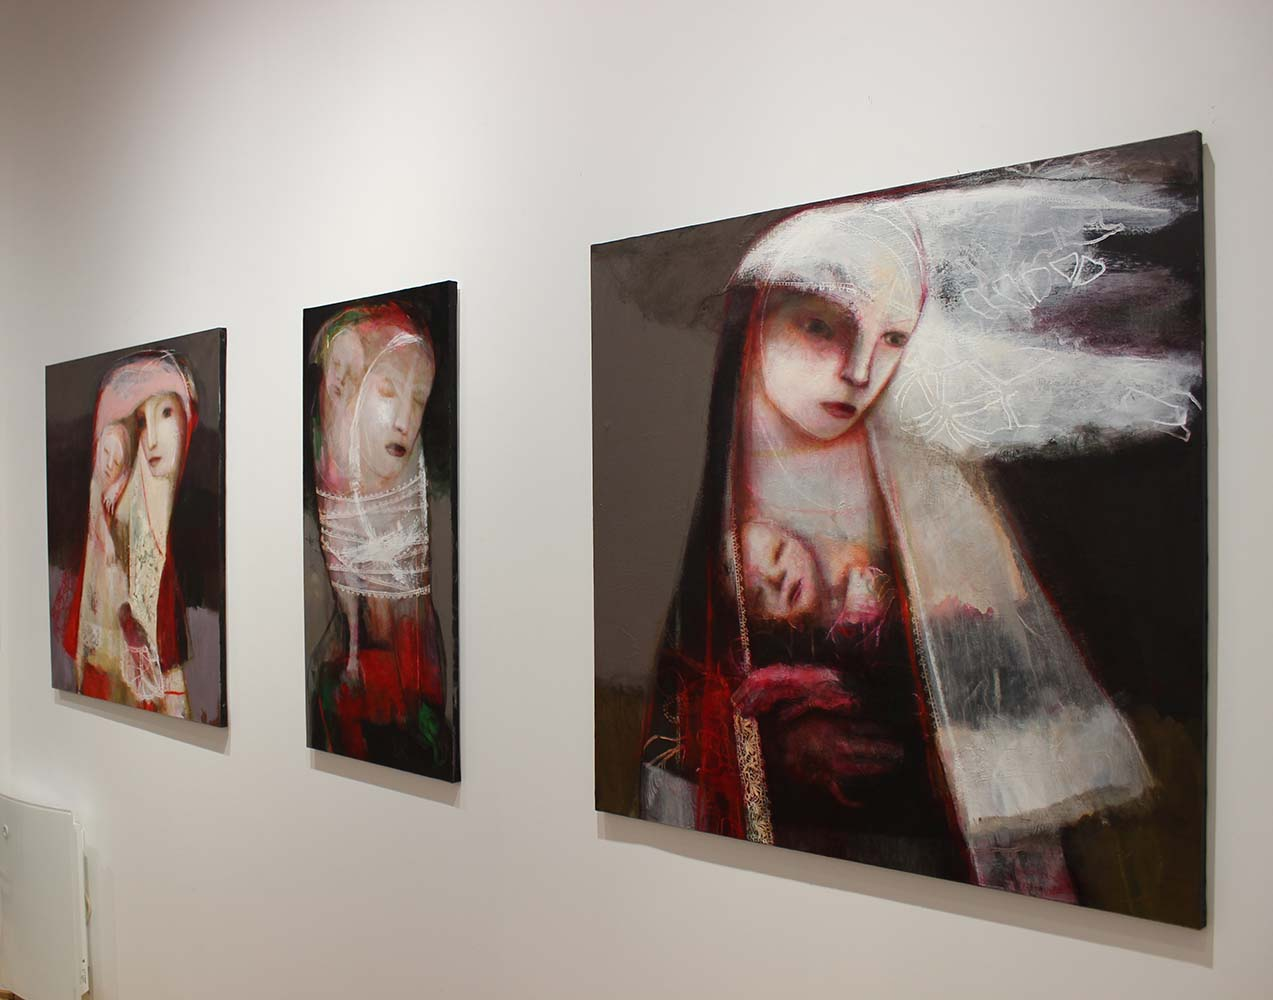 MOTHERS - Galerie Albane, Nantes, 2013